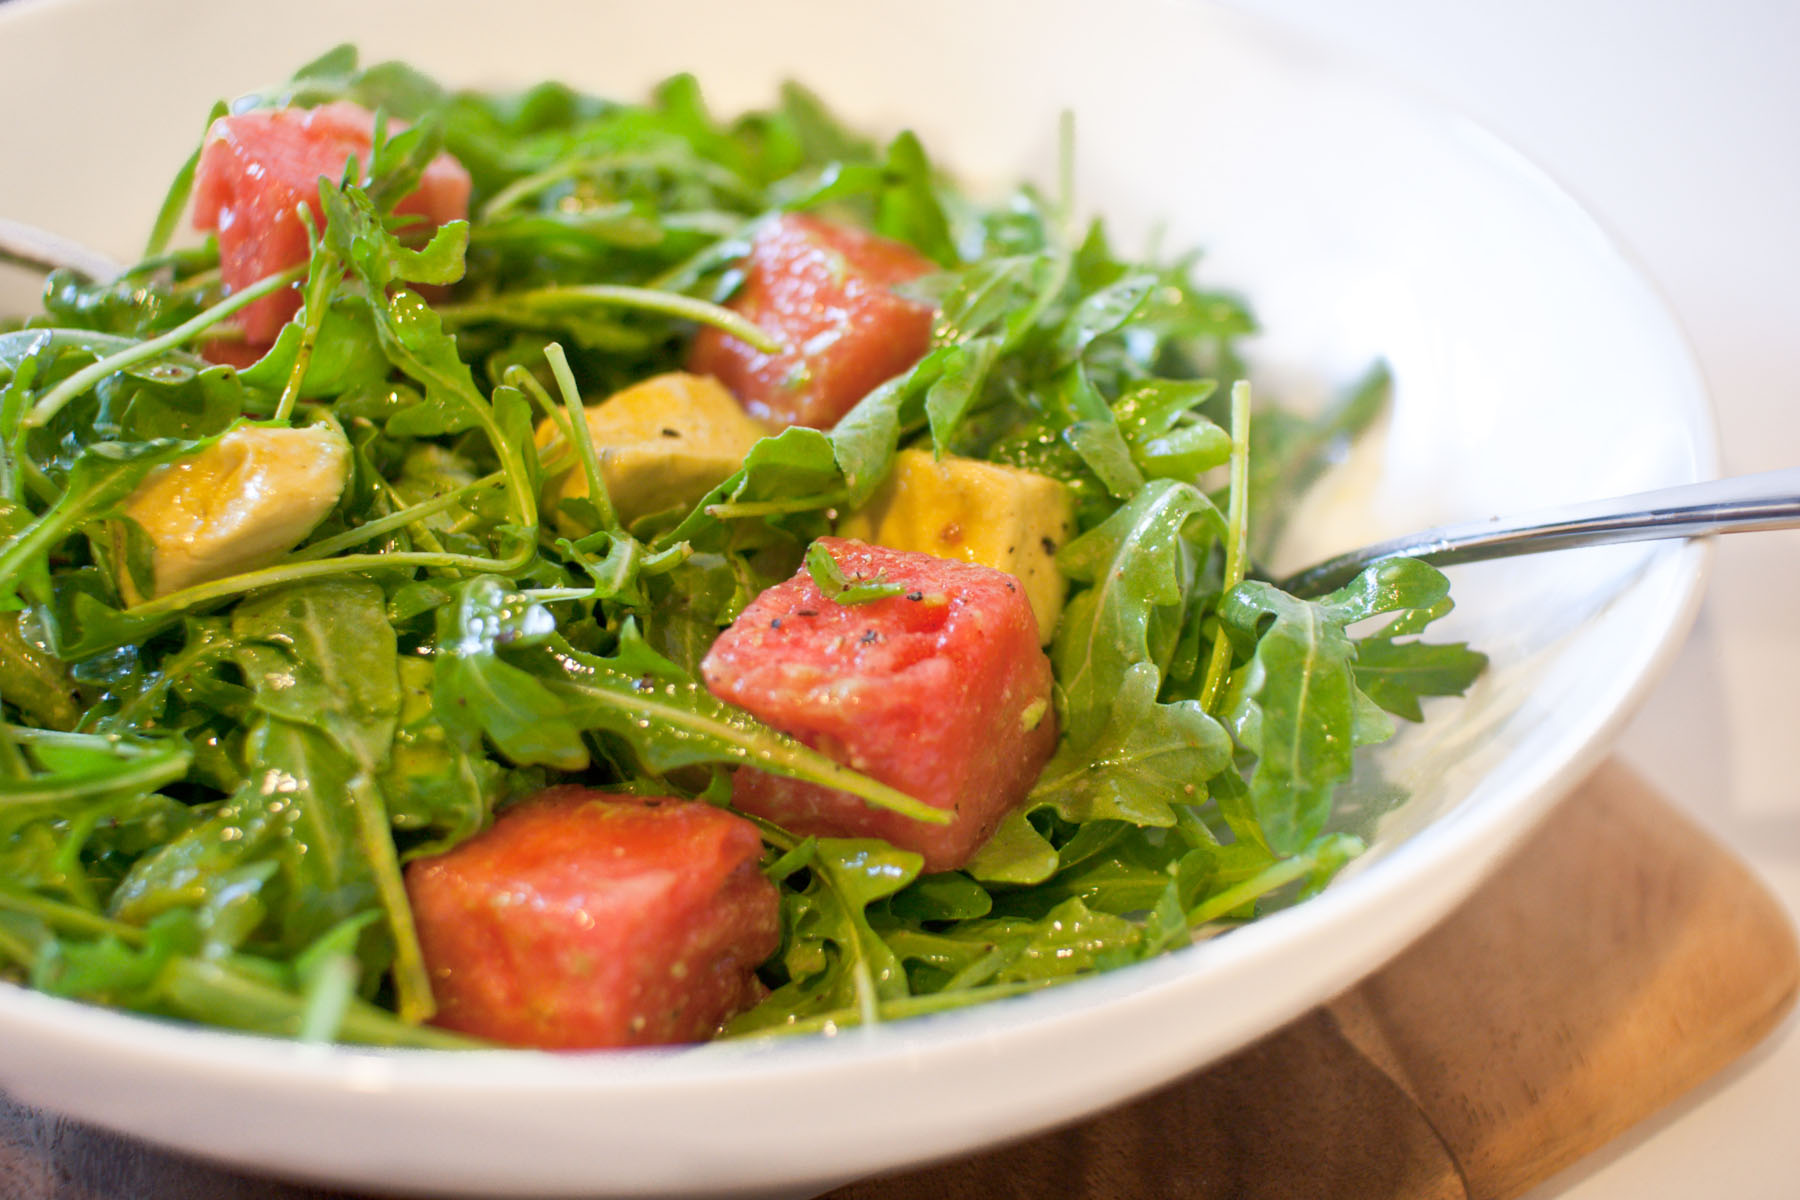 Arugula, Watermelon and Avocado Salad with Spicy Lime Vinaigrette